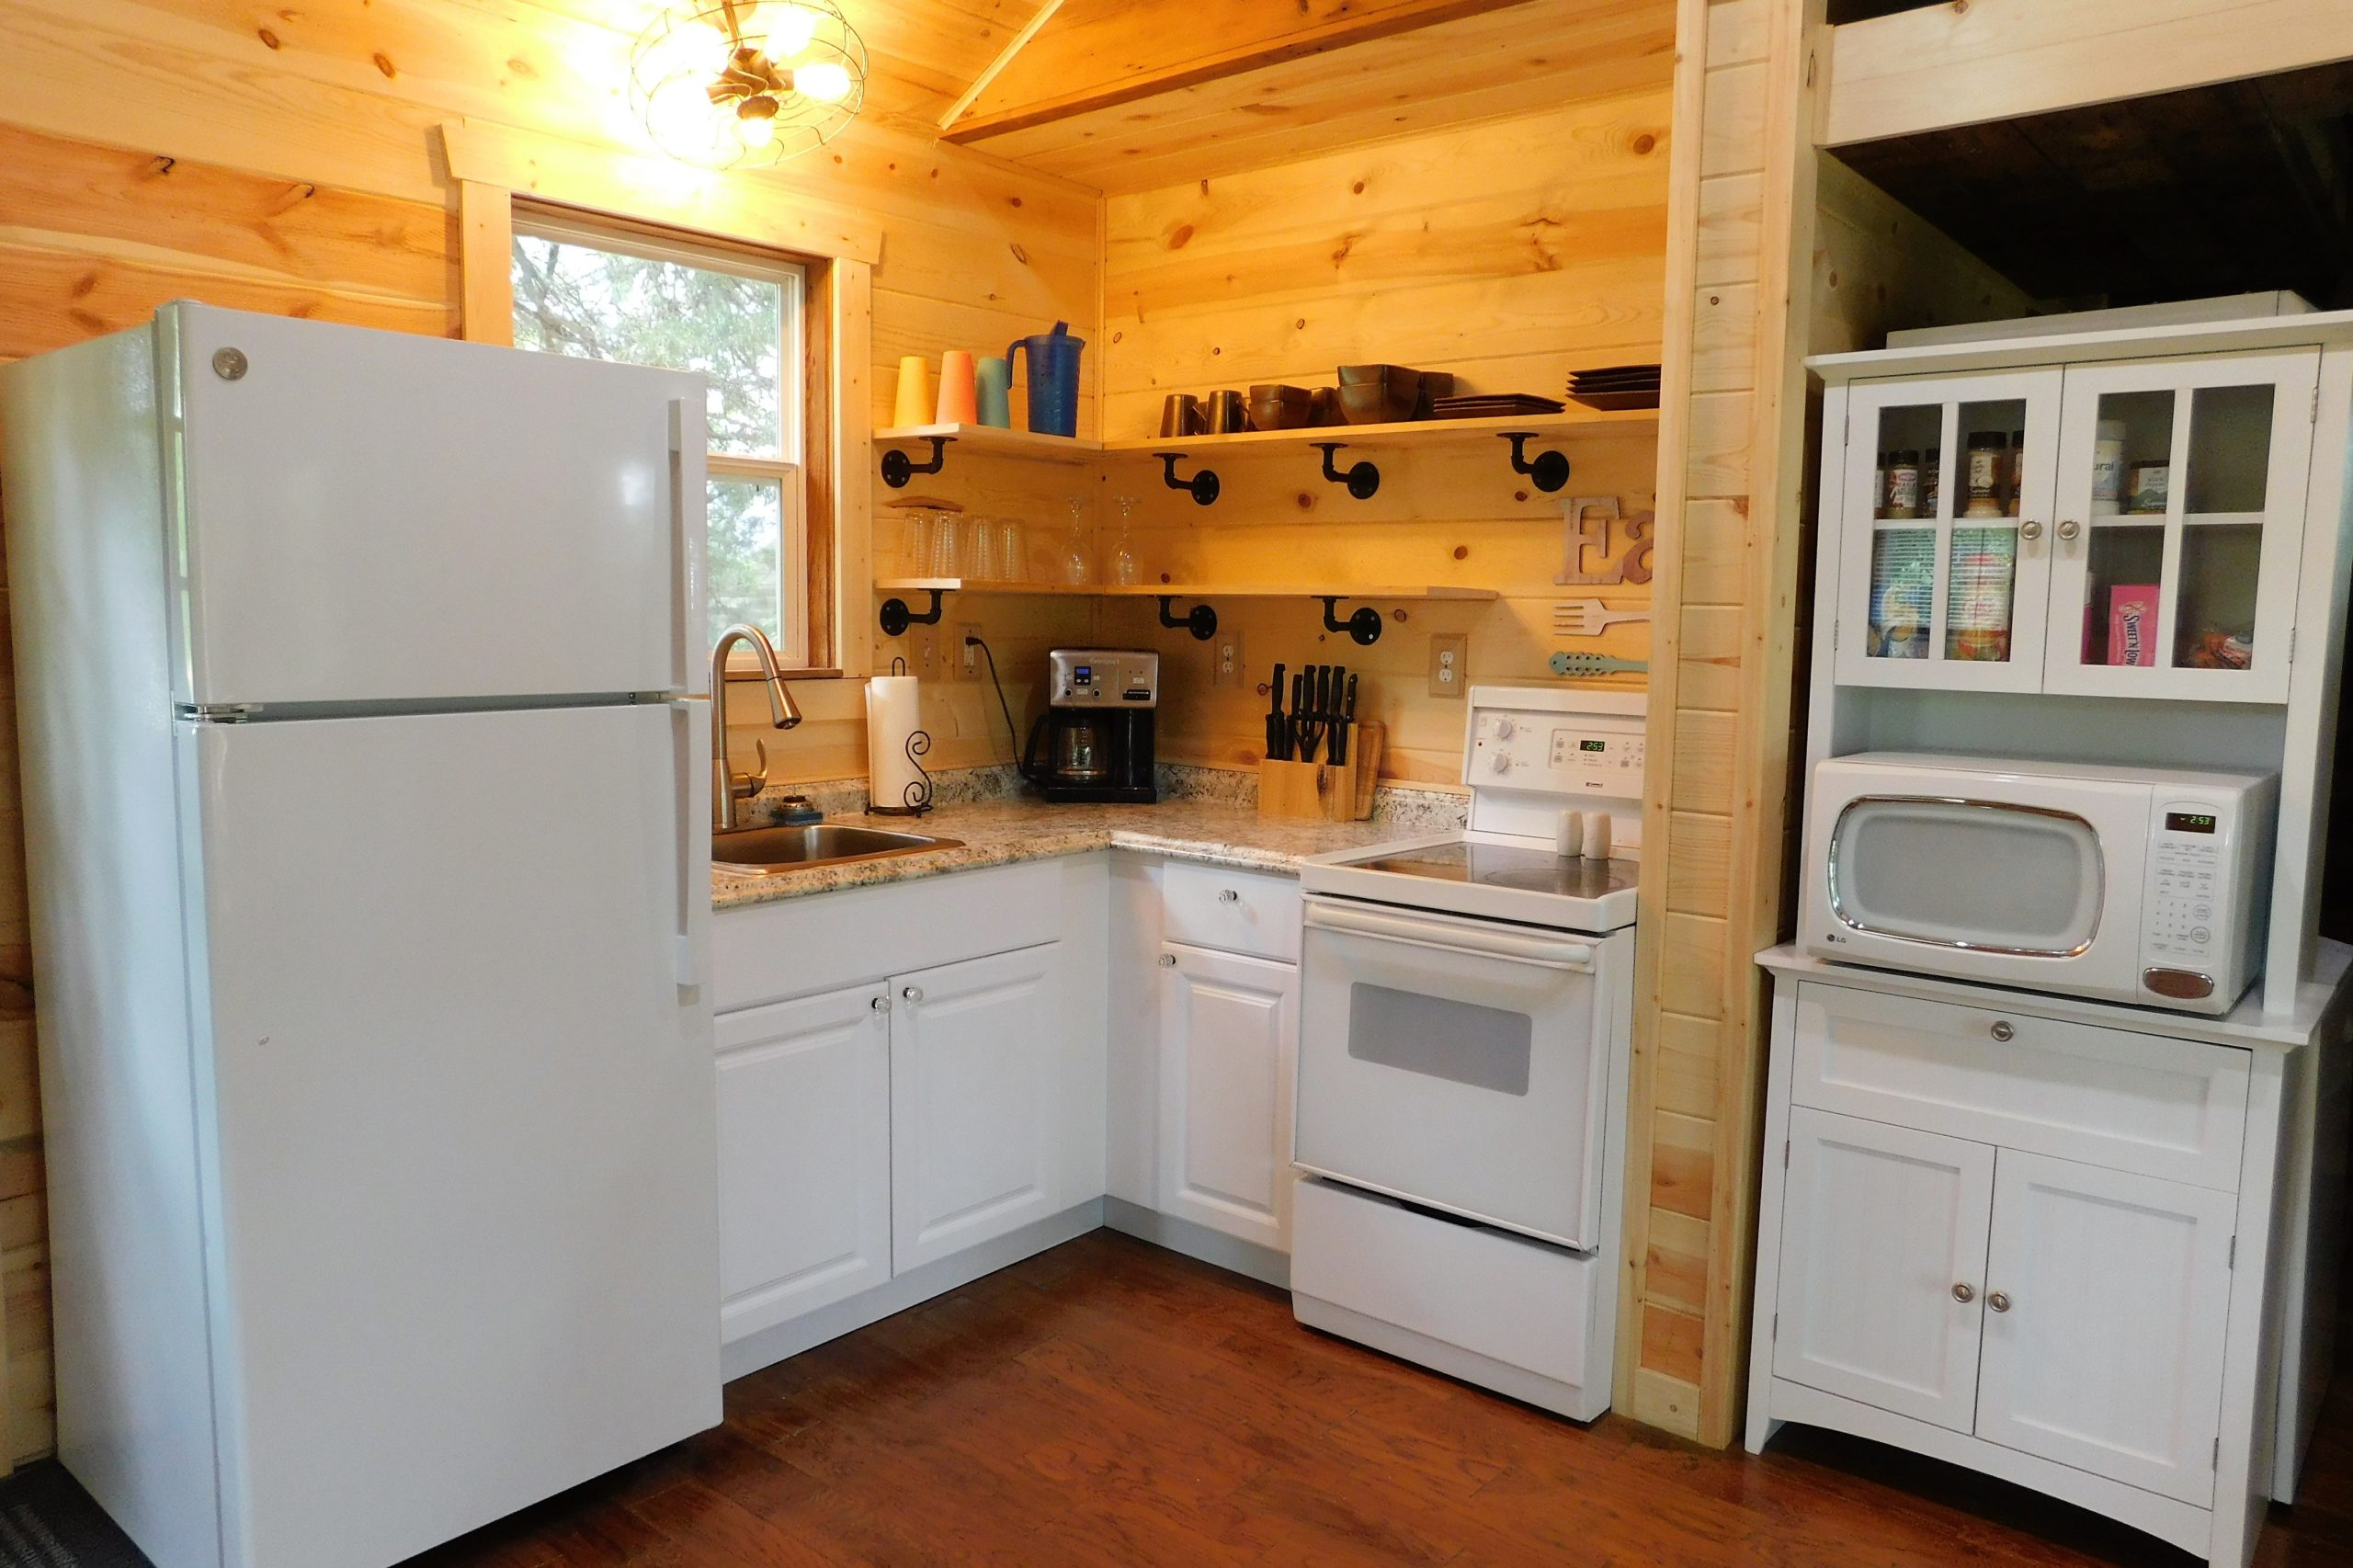 Refrigerator, Stove, Oven and Microwave